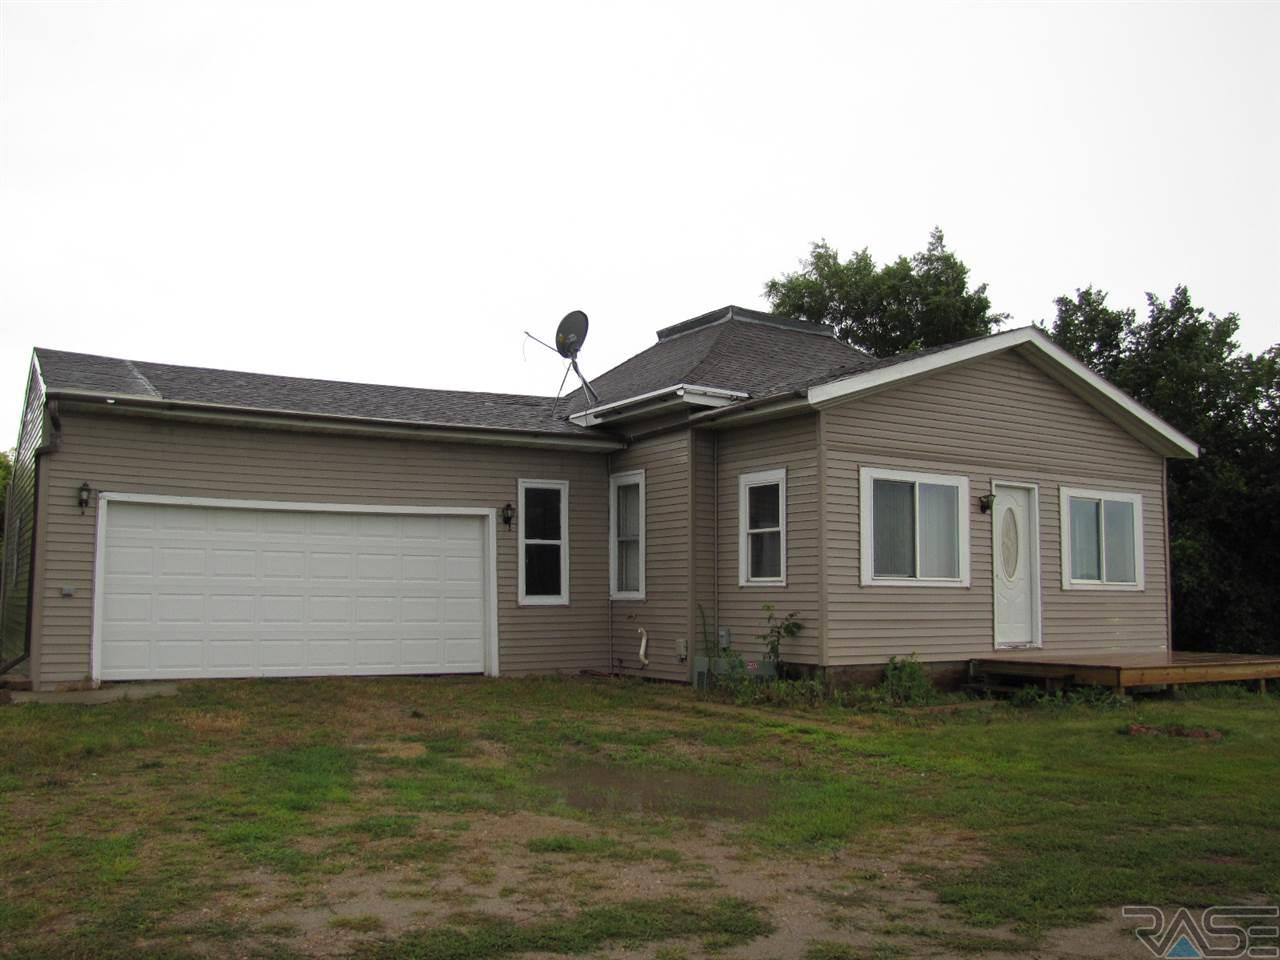 1402 85th St, Luverne, MN 56156